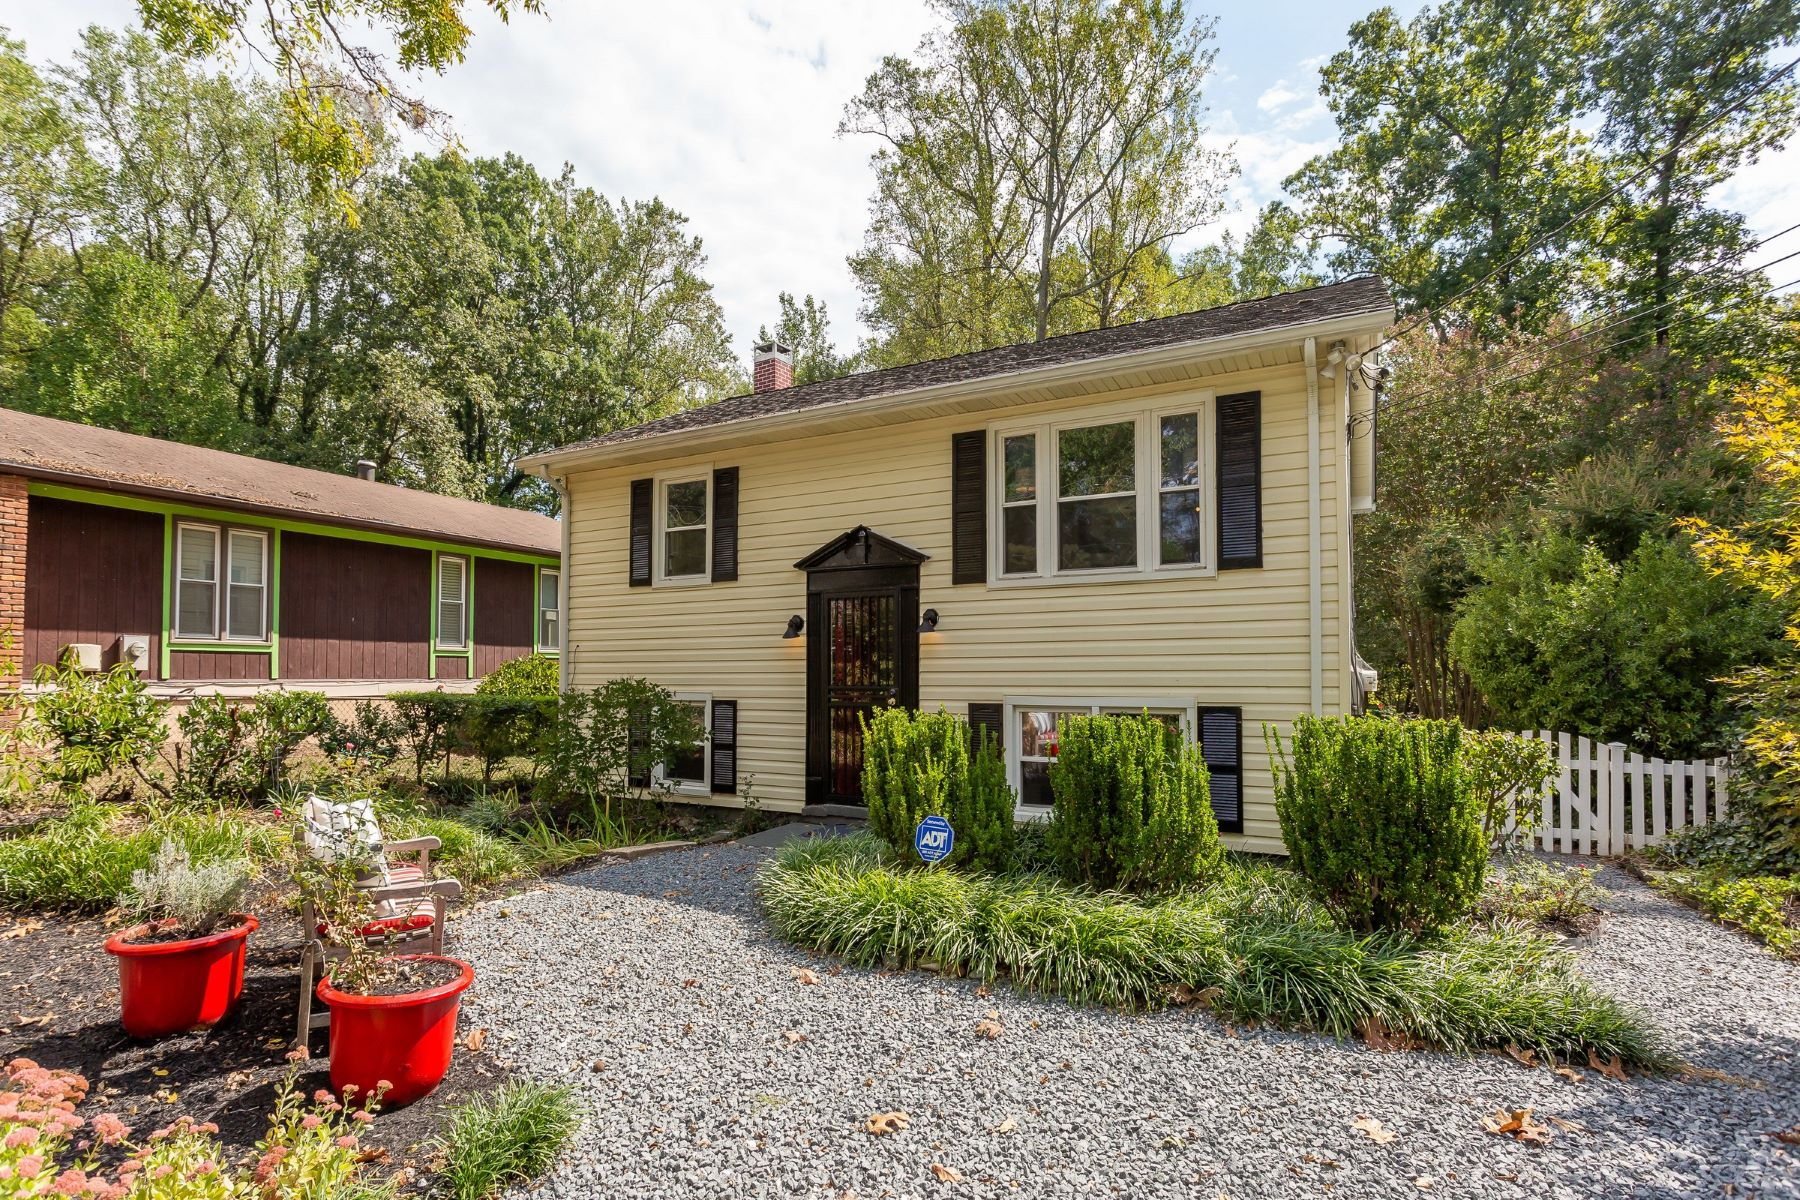 Single Family Homes for Sale at Designed for Living and Entertaining 2947 Edgewater Drive Edgewater, Maryland 21037 United States